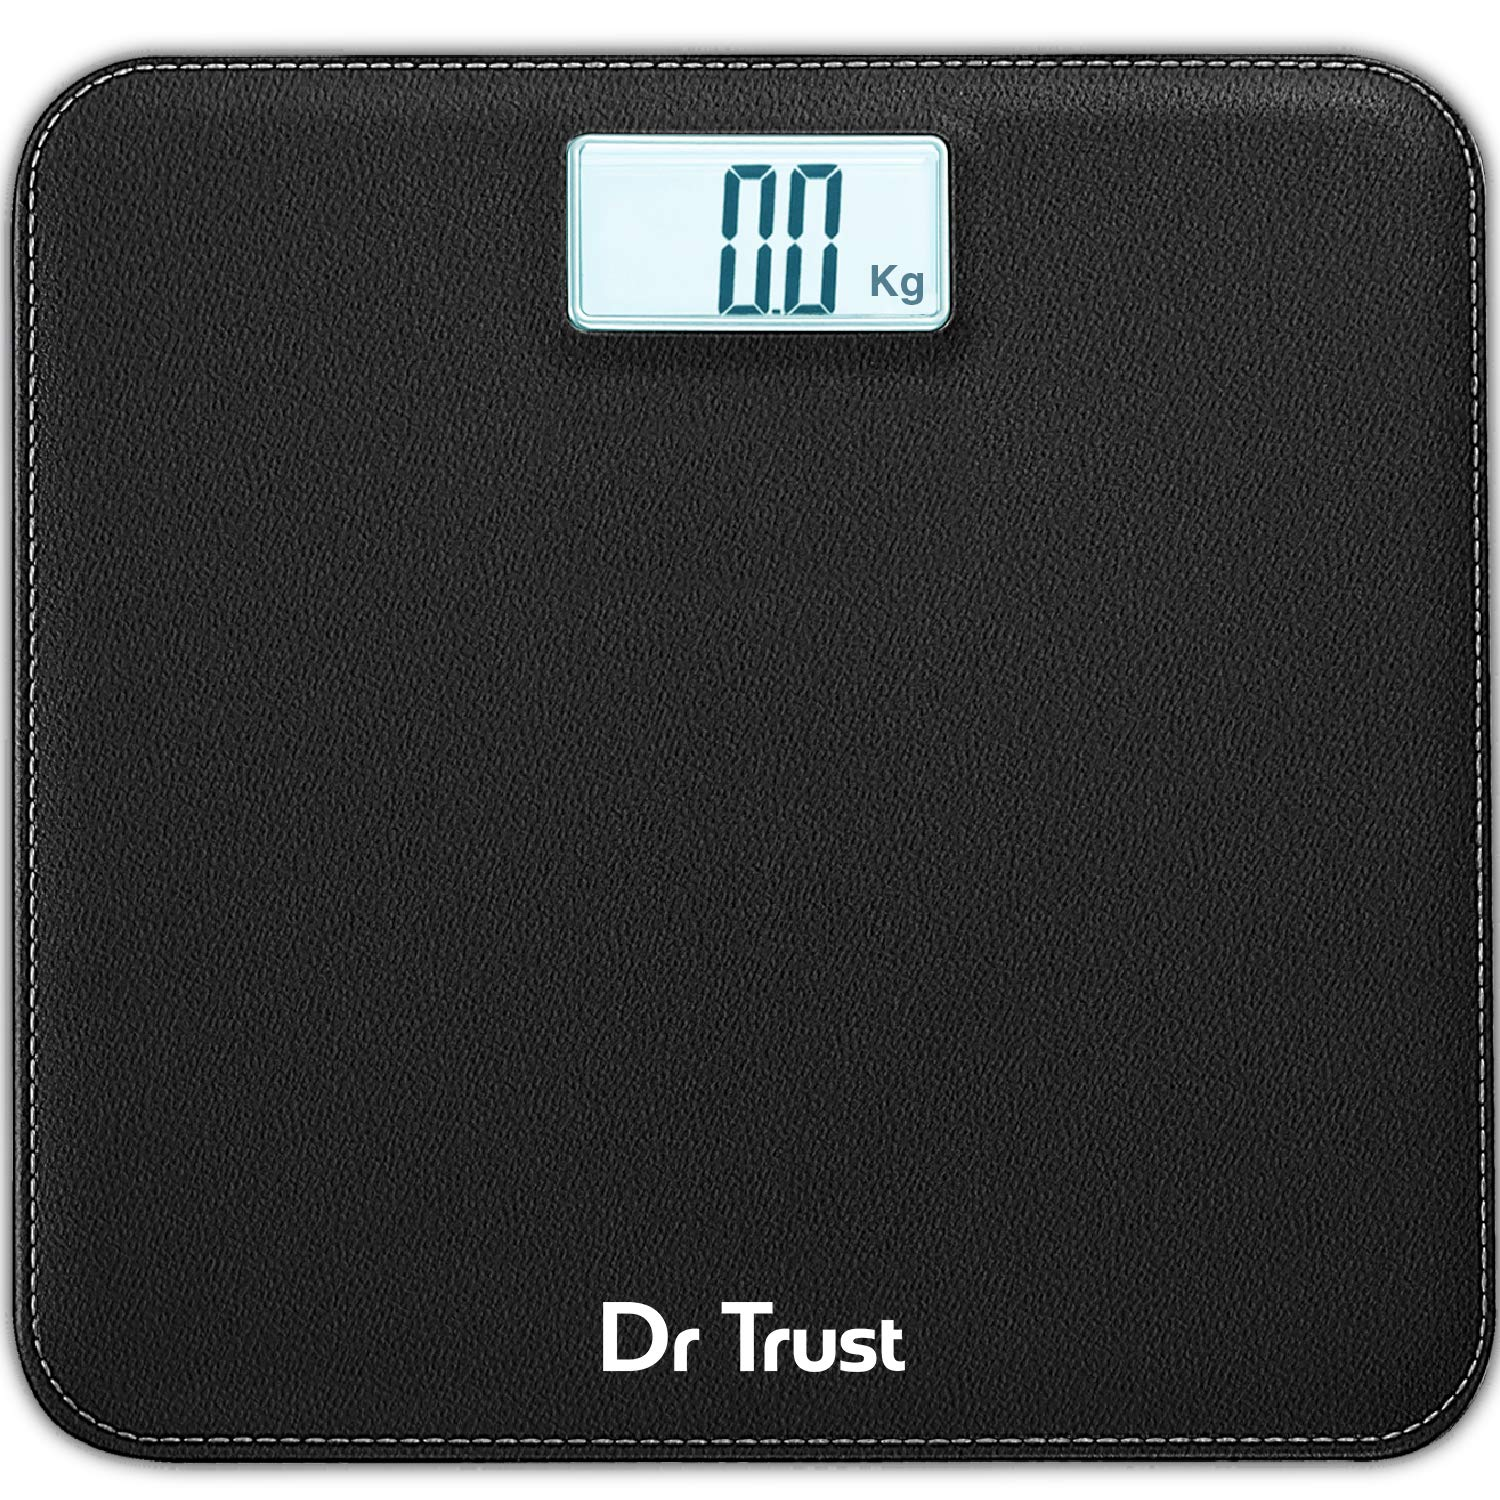 Dr. Trust Absolute Leather Personal Digital Scale Weighing Machine